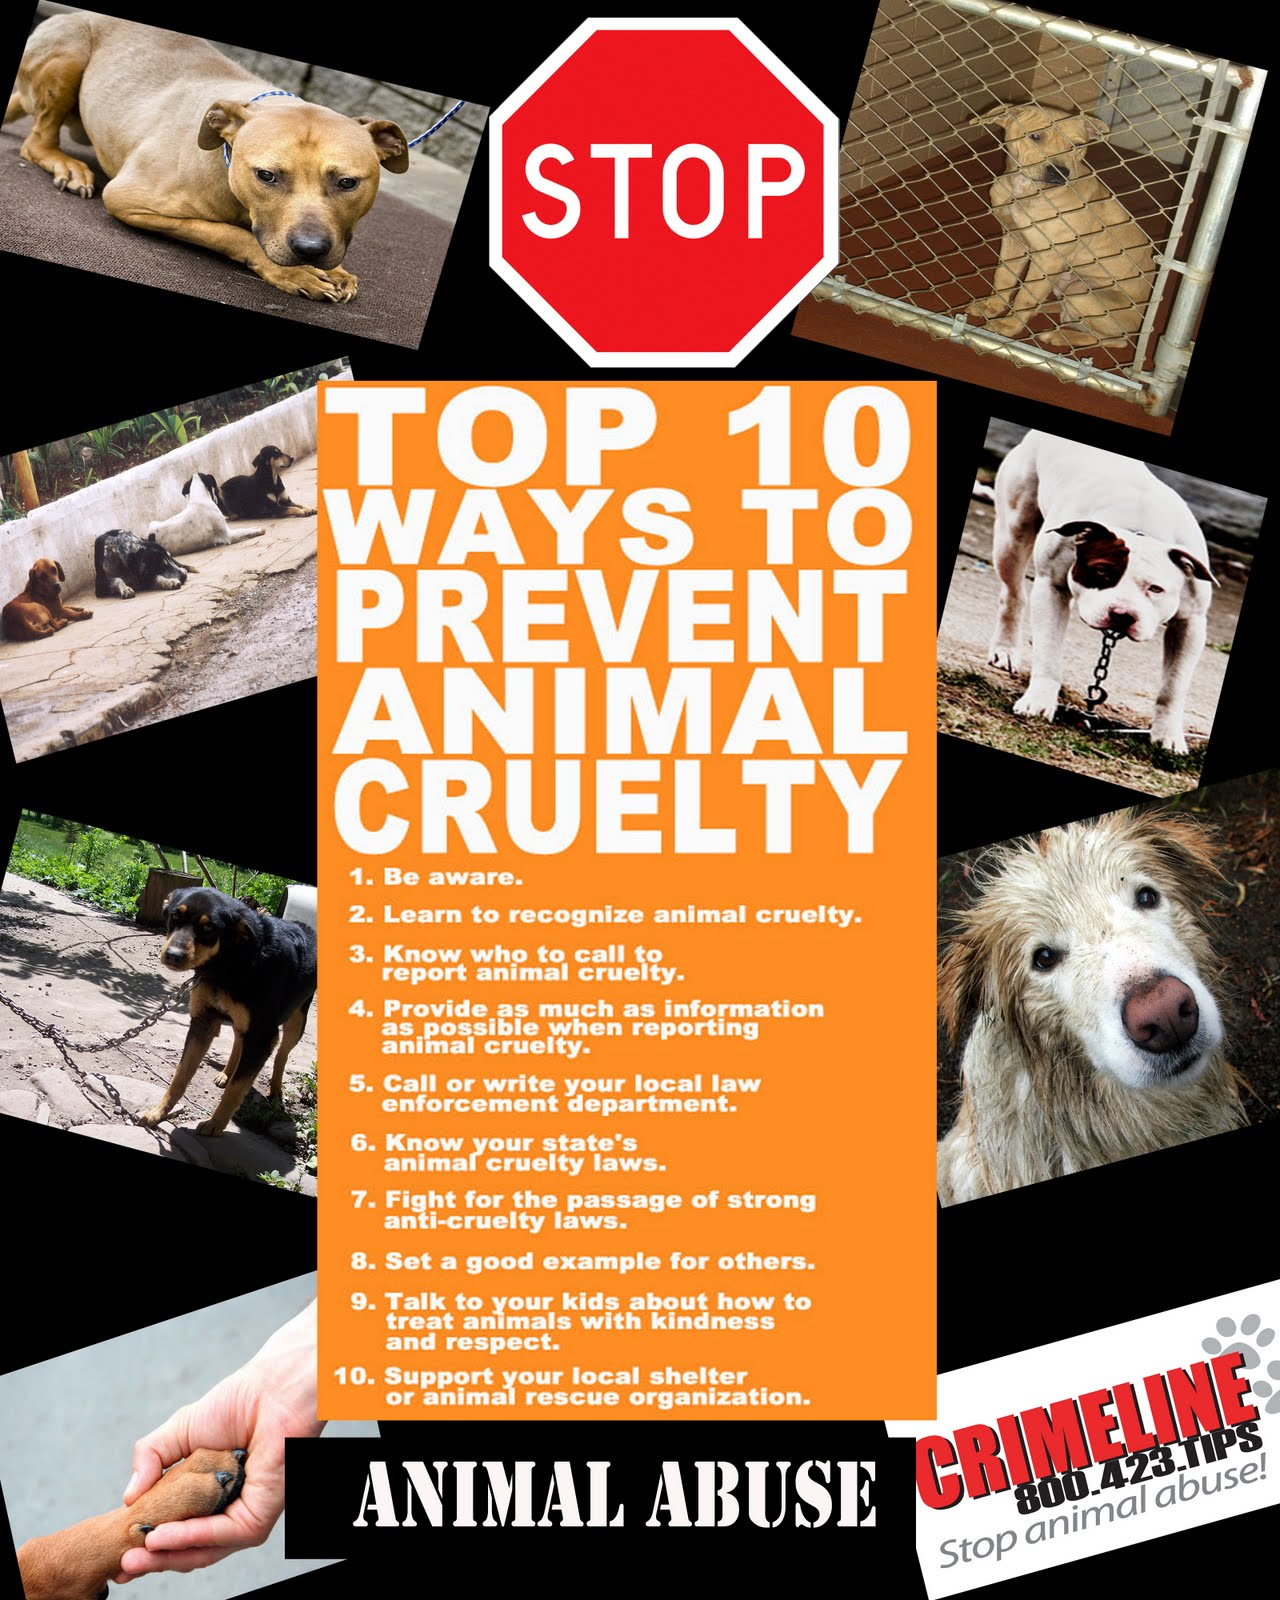 Animal abuse posters - photo#23